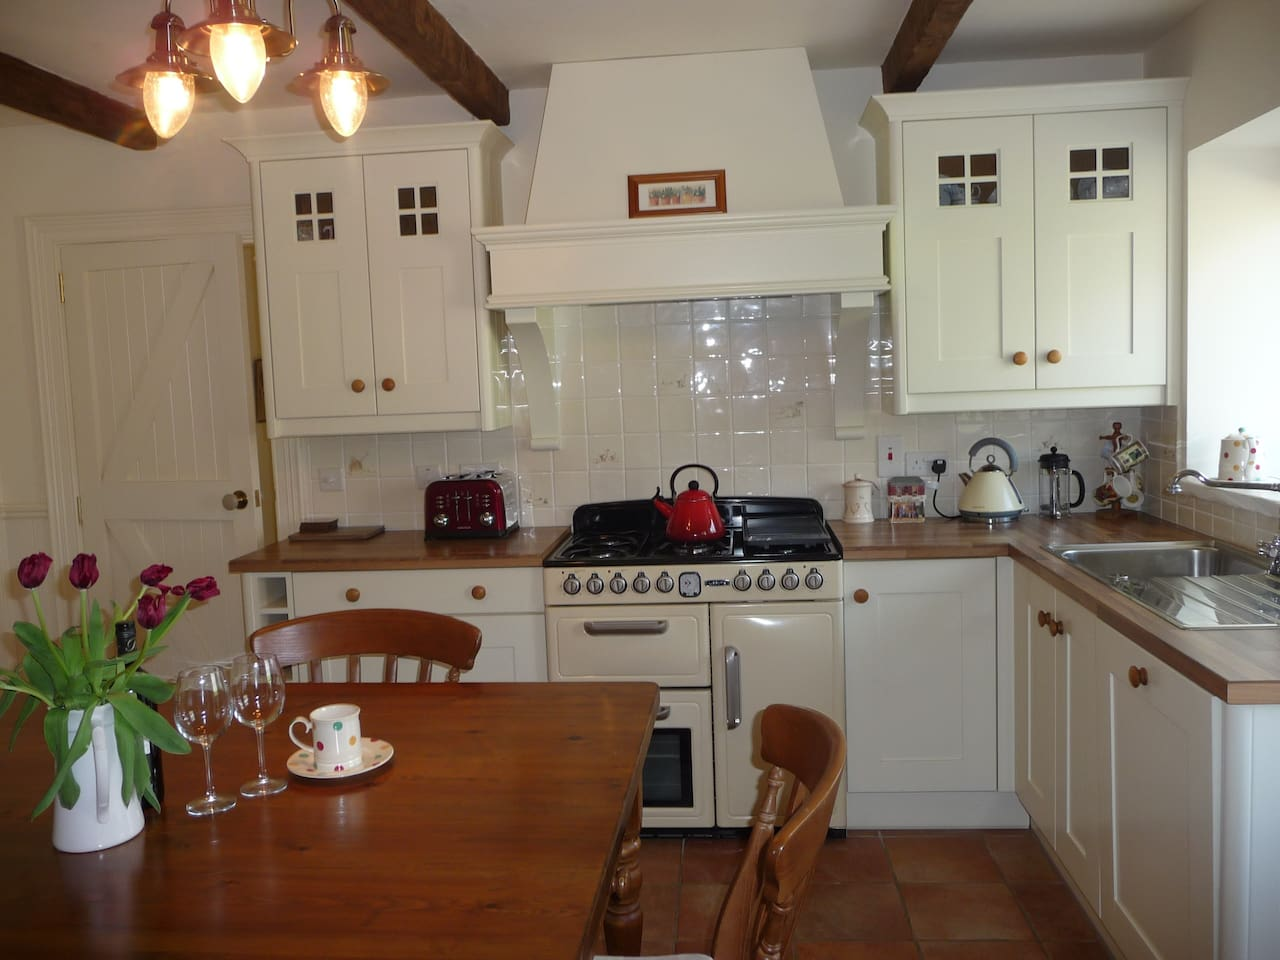 Kitchen with large range cooker and family dining table